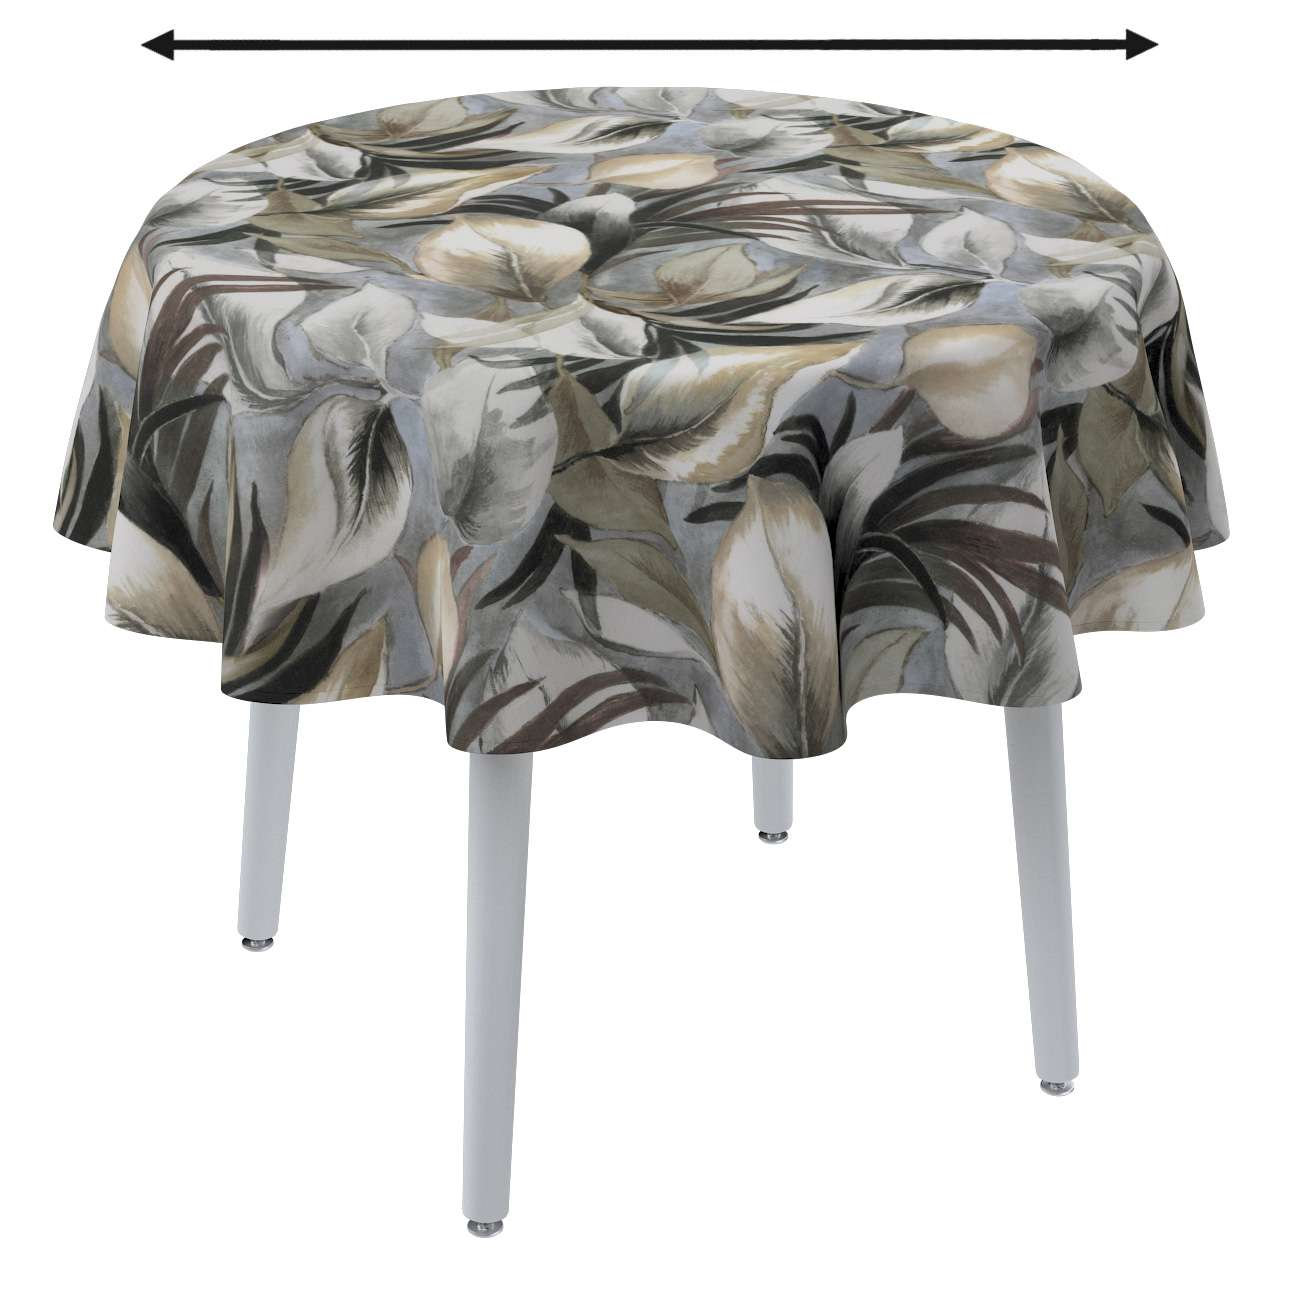 Round tablecloth in collection Abigail, fabric: 143-60